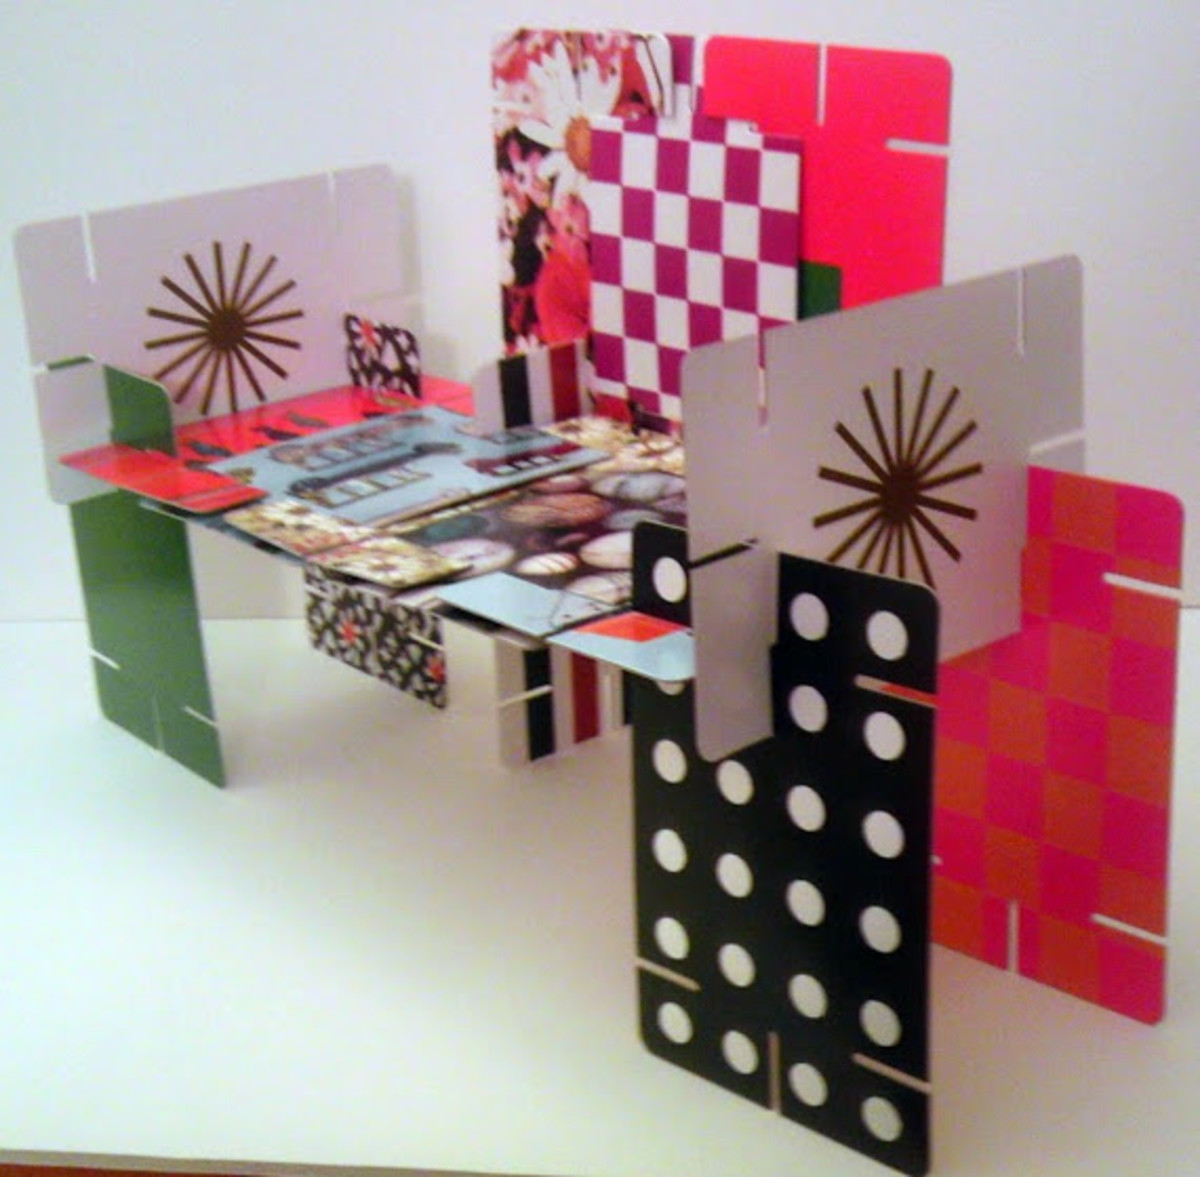 The building possibilities are endless with the Eames cards.